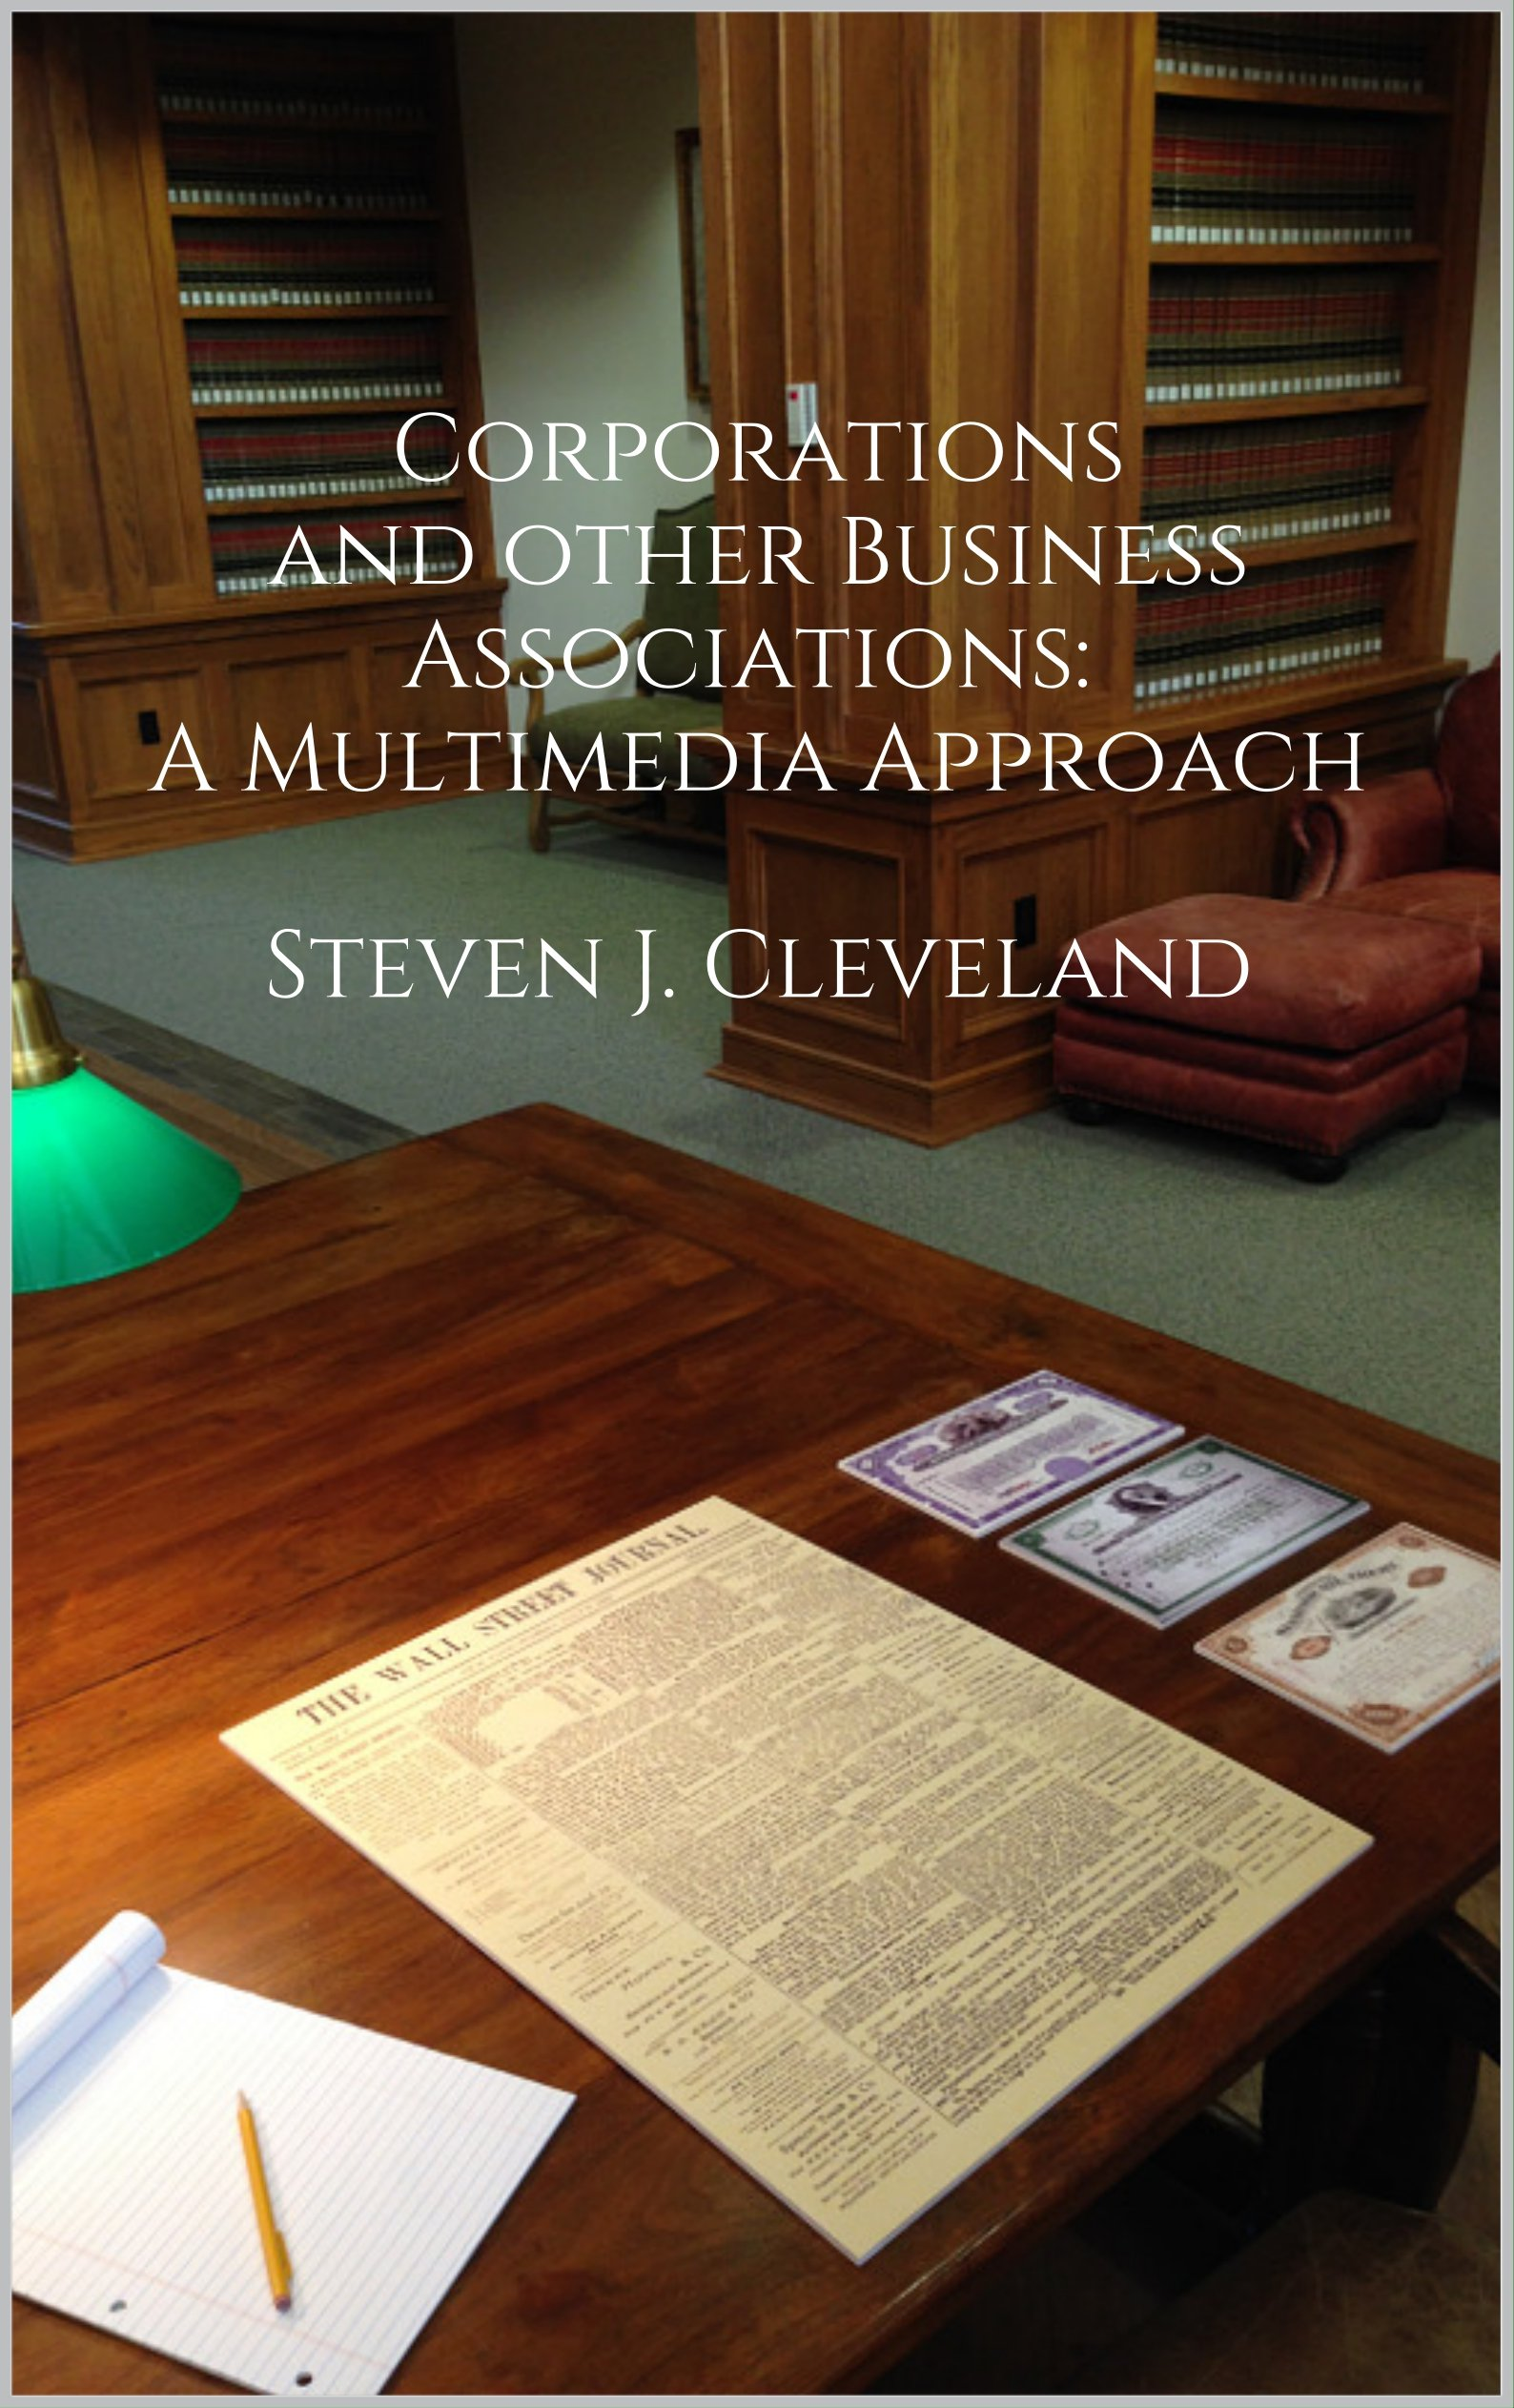 Corporations and Other Business Associations: A Multimedia Approach (2nd ed. 2017)